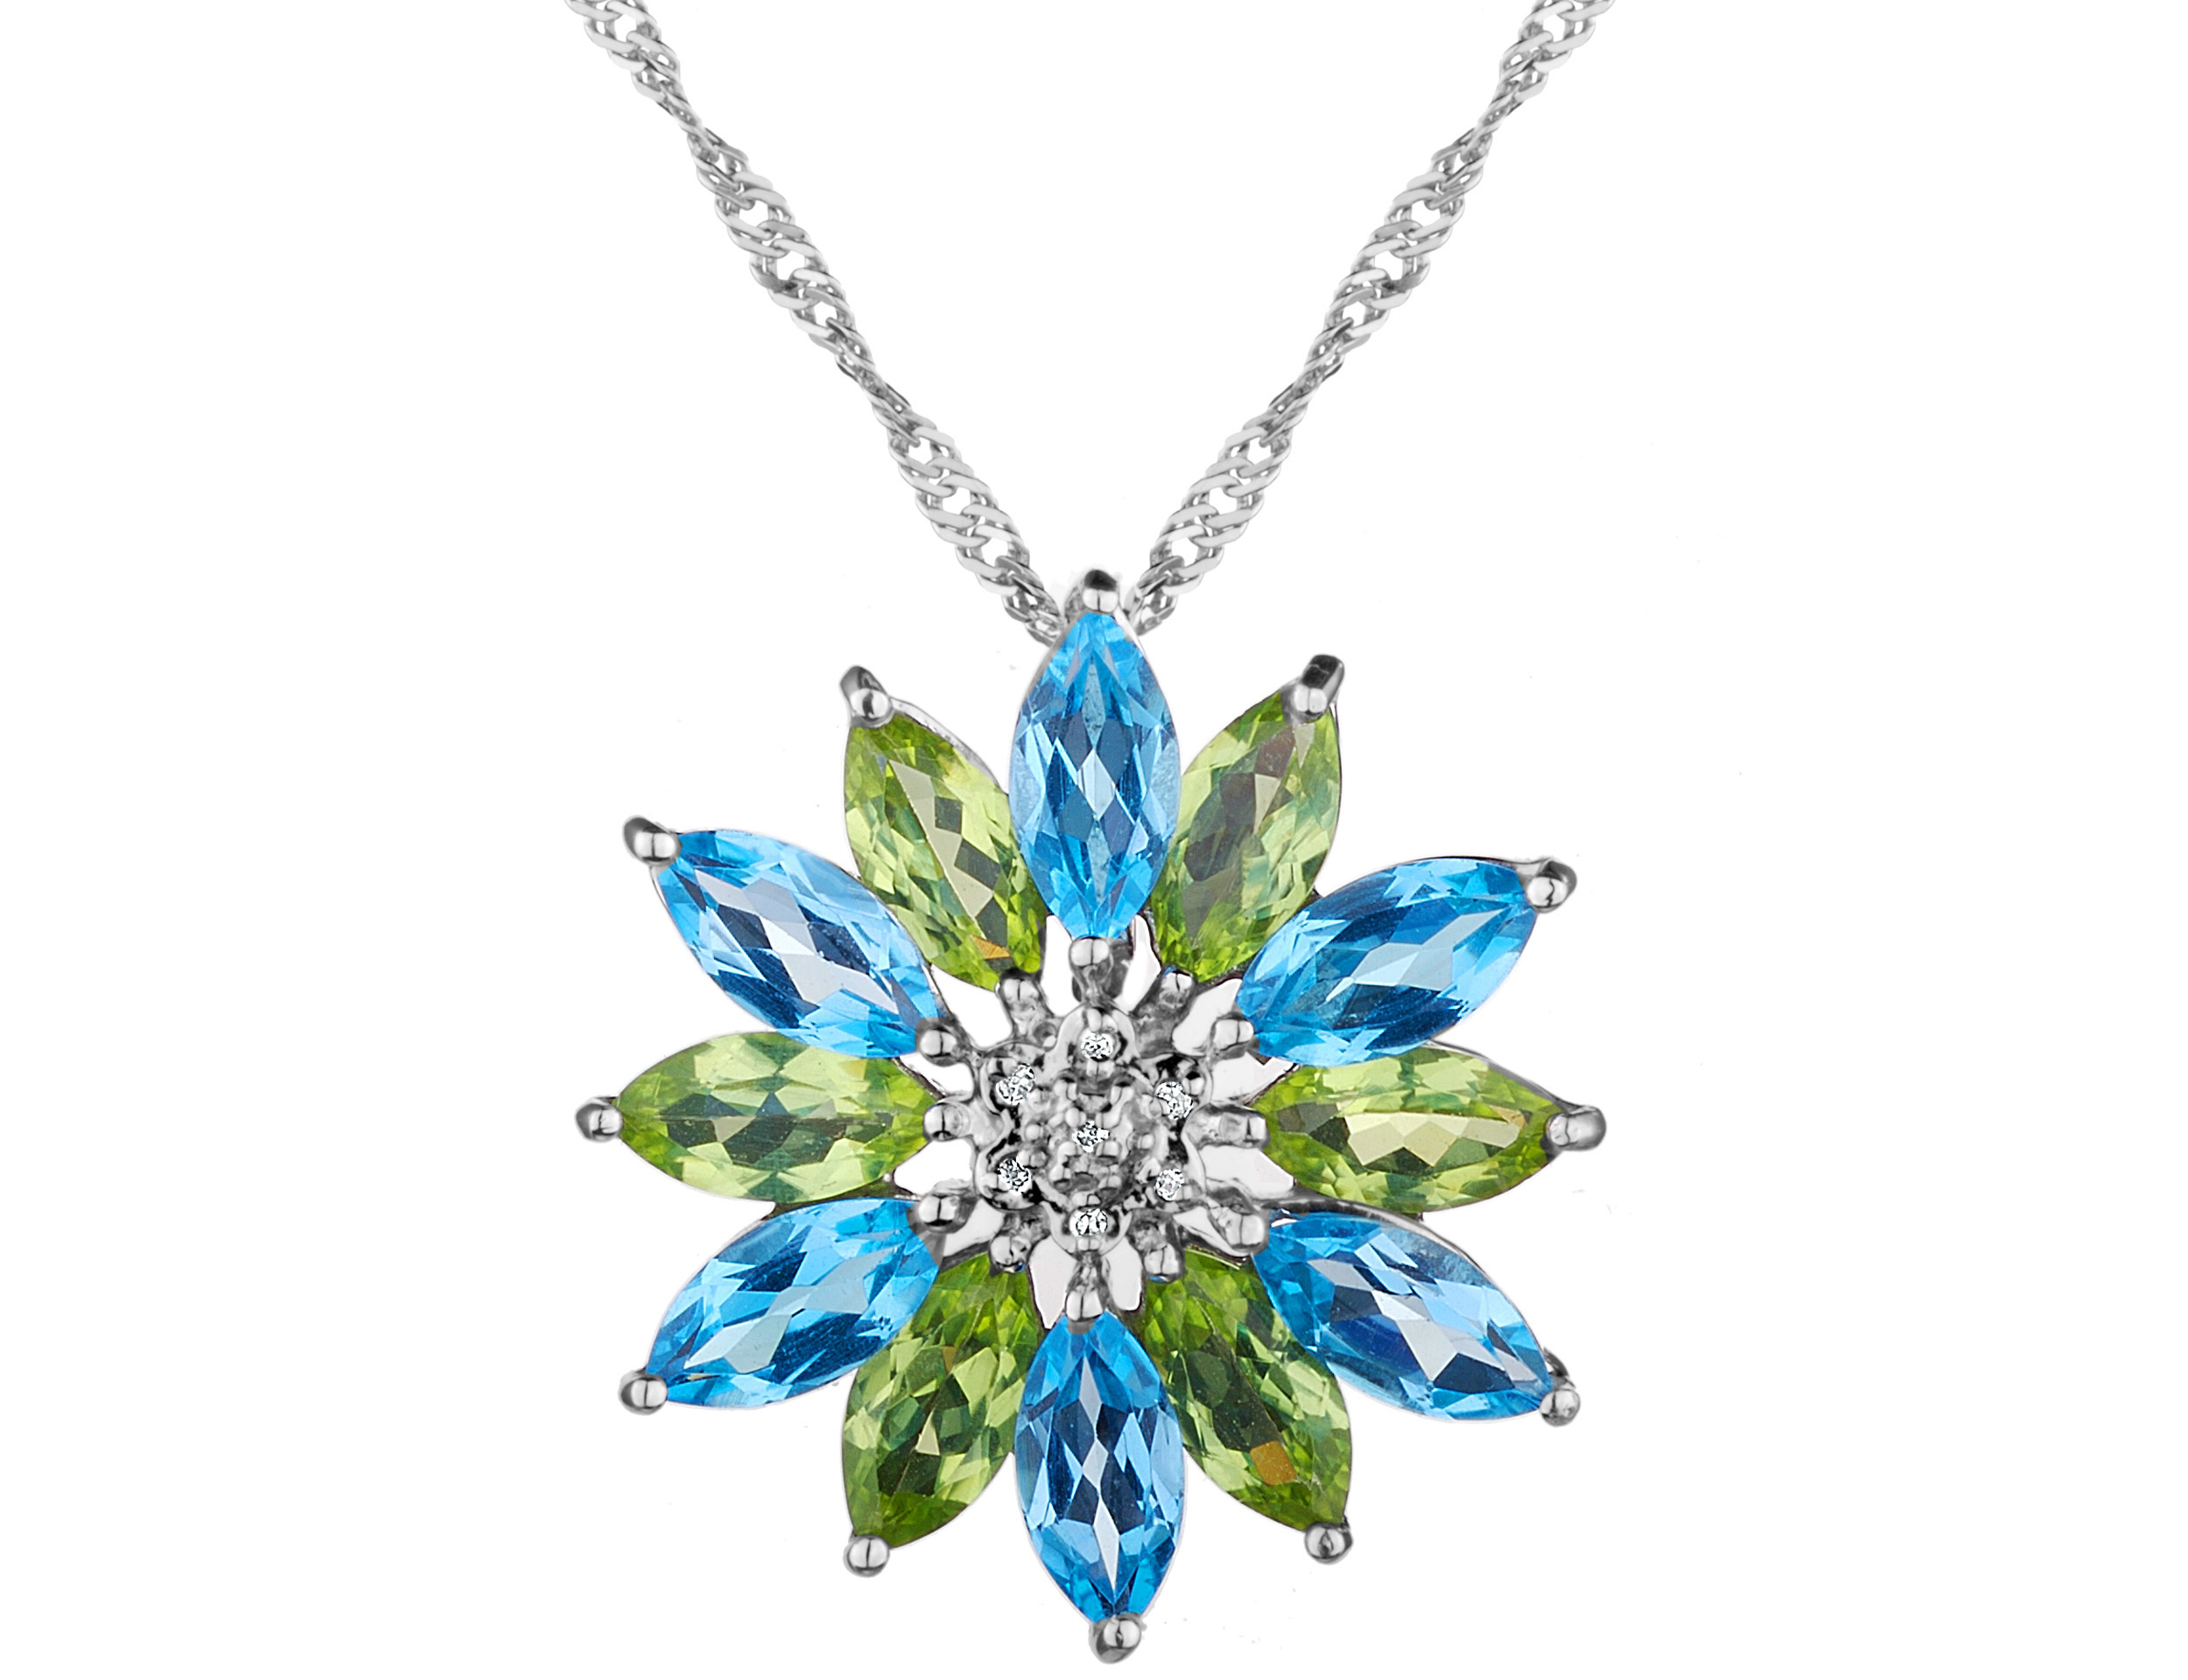 Blue Topaz and Peridot Flower (7.0 Carat ctw) Pendant Necklace with Diamonds in Sterling Silver